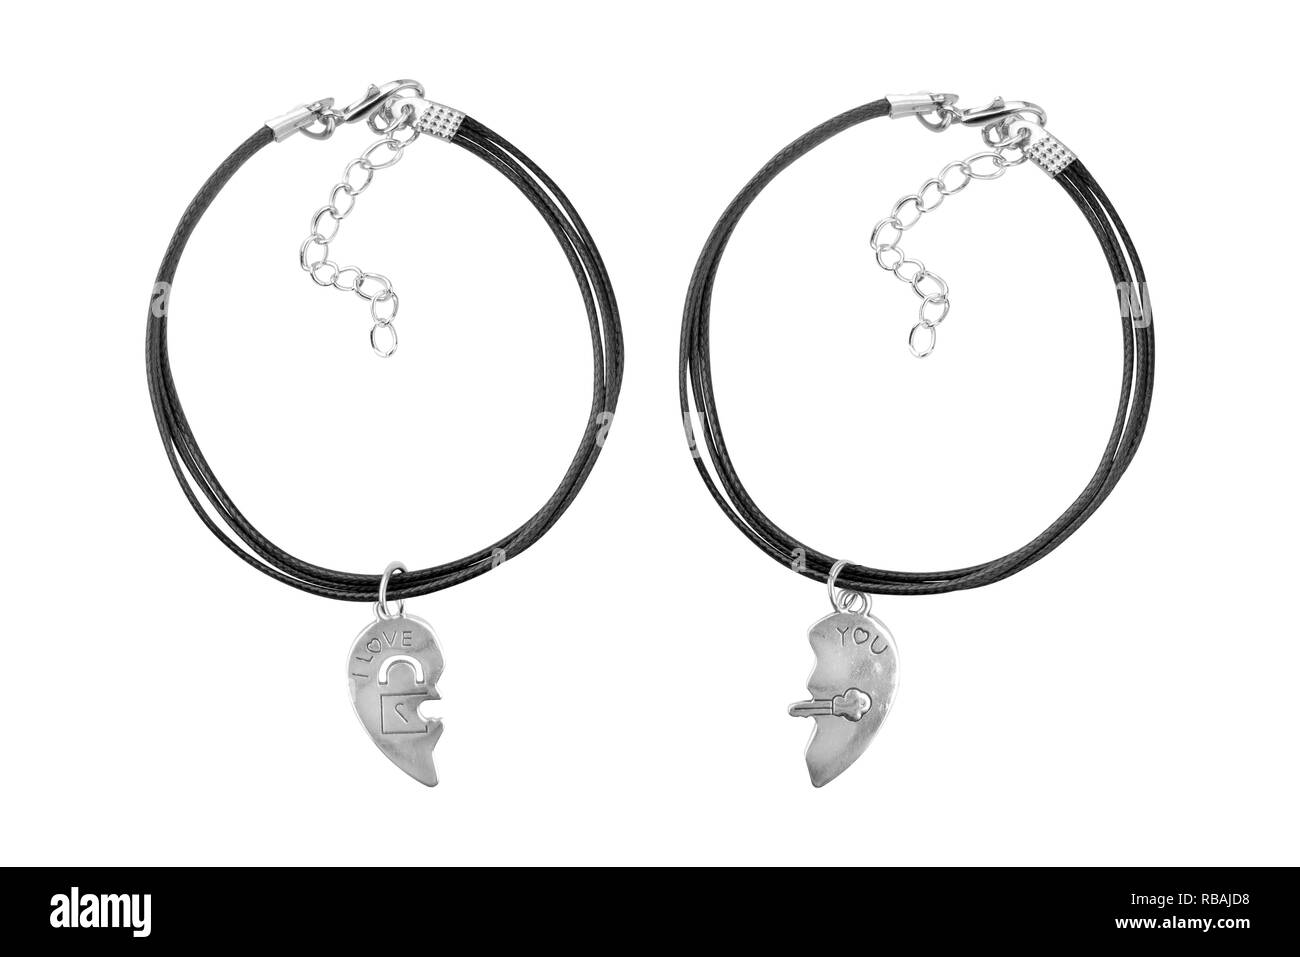 Silver and black textile adjustable bracelet with i love you pendant, isolated on white background, clipping path included - Stock Image